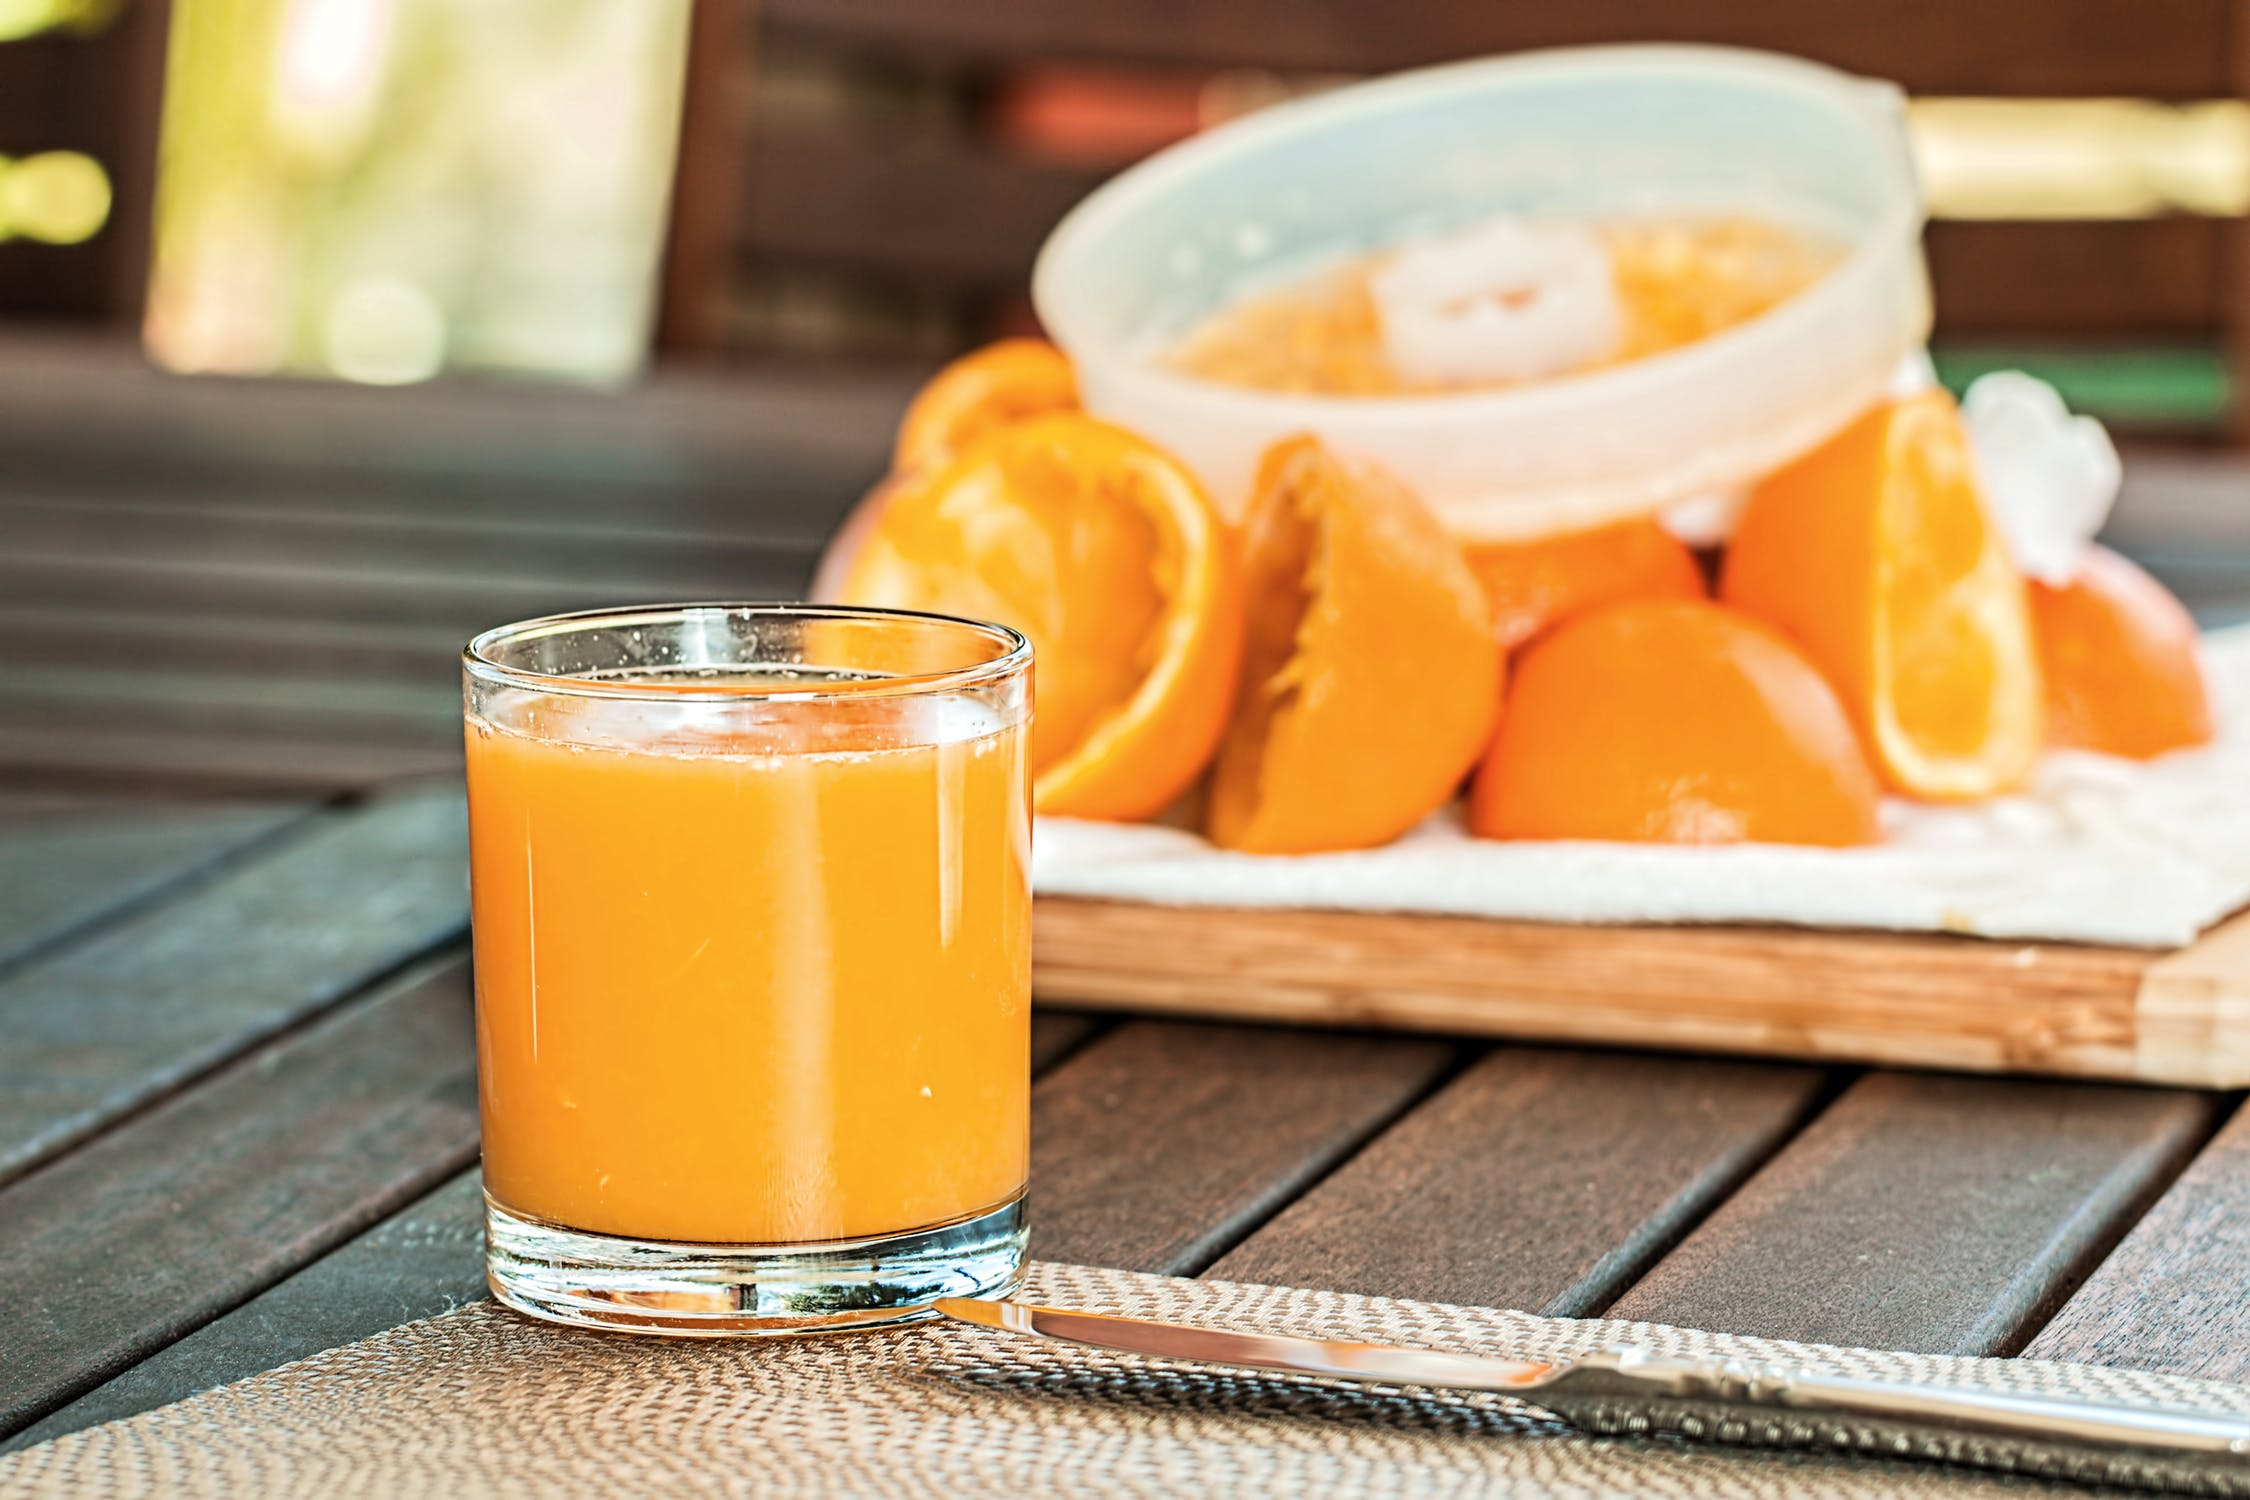 We've All Been Lied To About The 'Benefits' Of Orange Juice